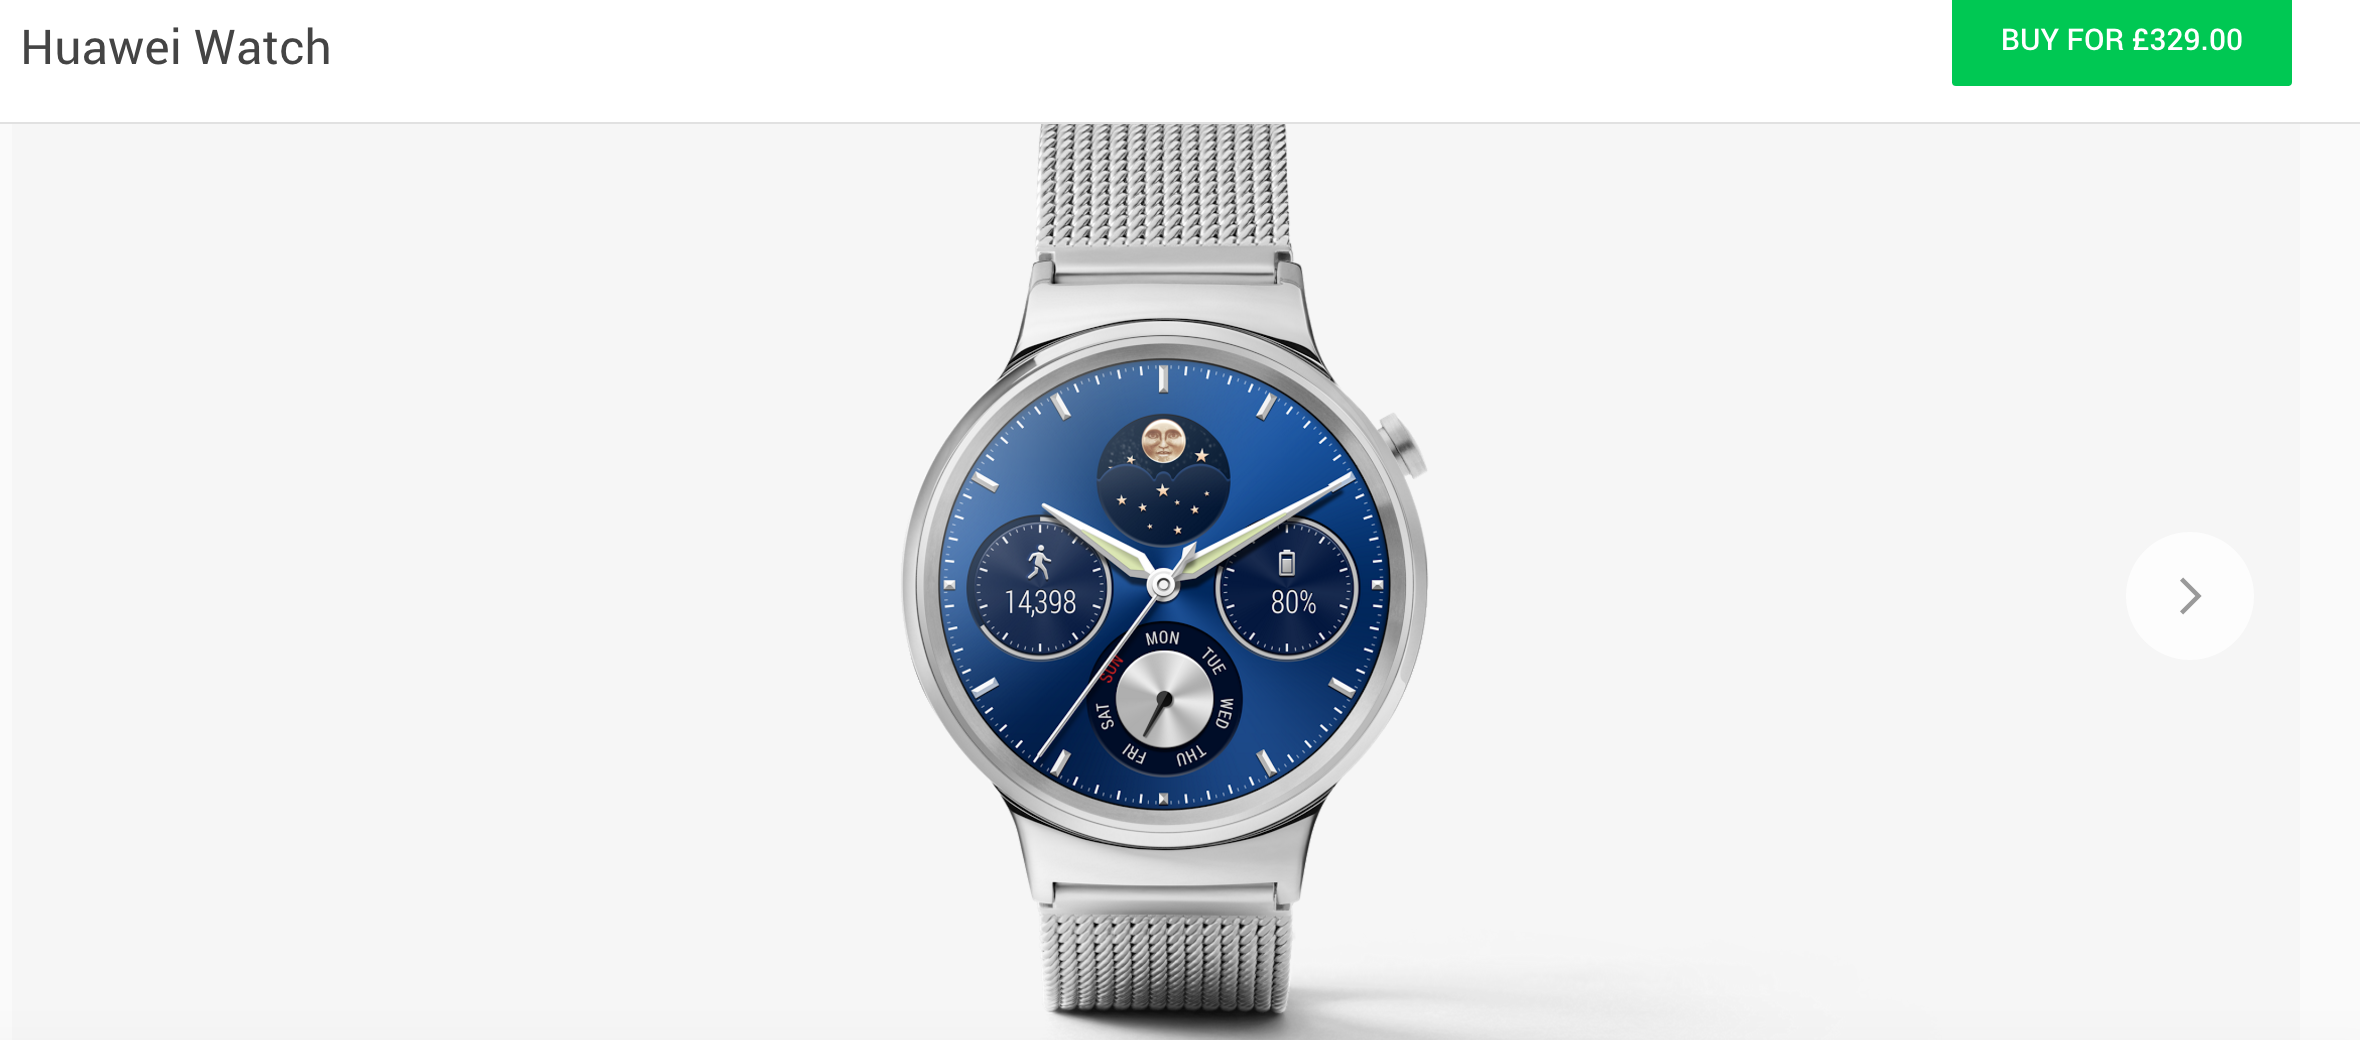 Huawei Watch now available on UK Google Store - Coolsmartphone